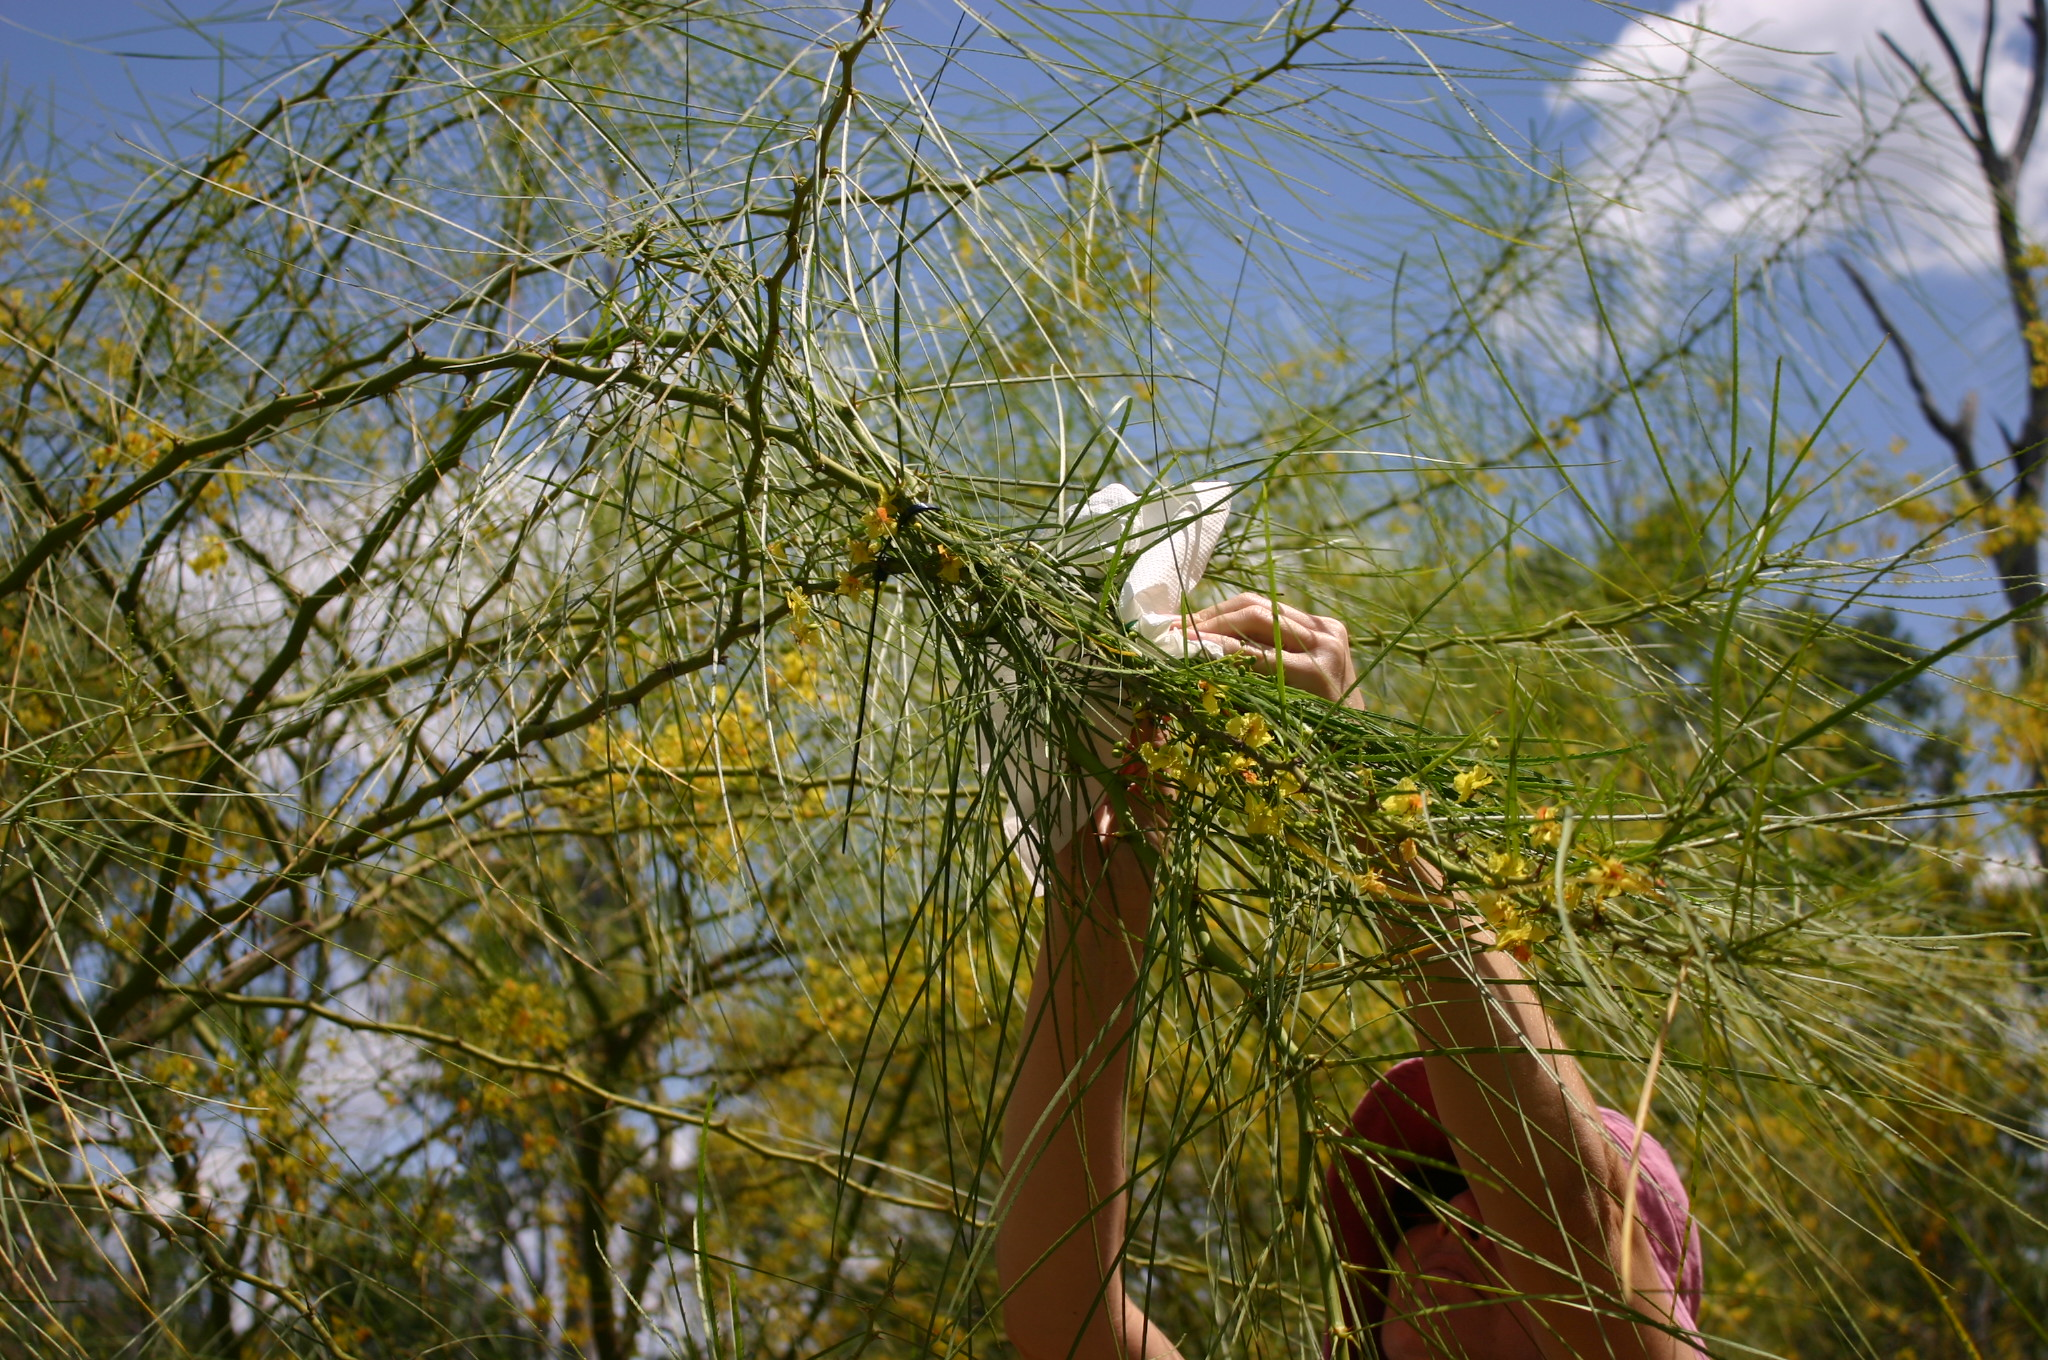 A person reaching up into a Parkinsonia tree to release the larva of a biological control insect.